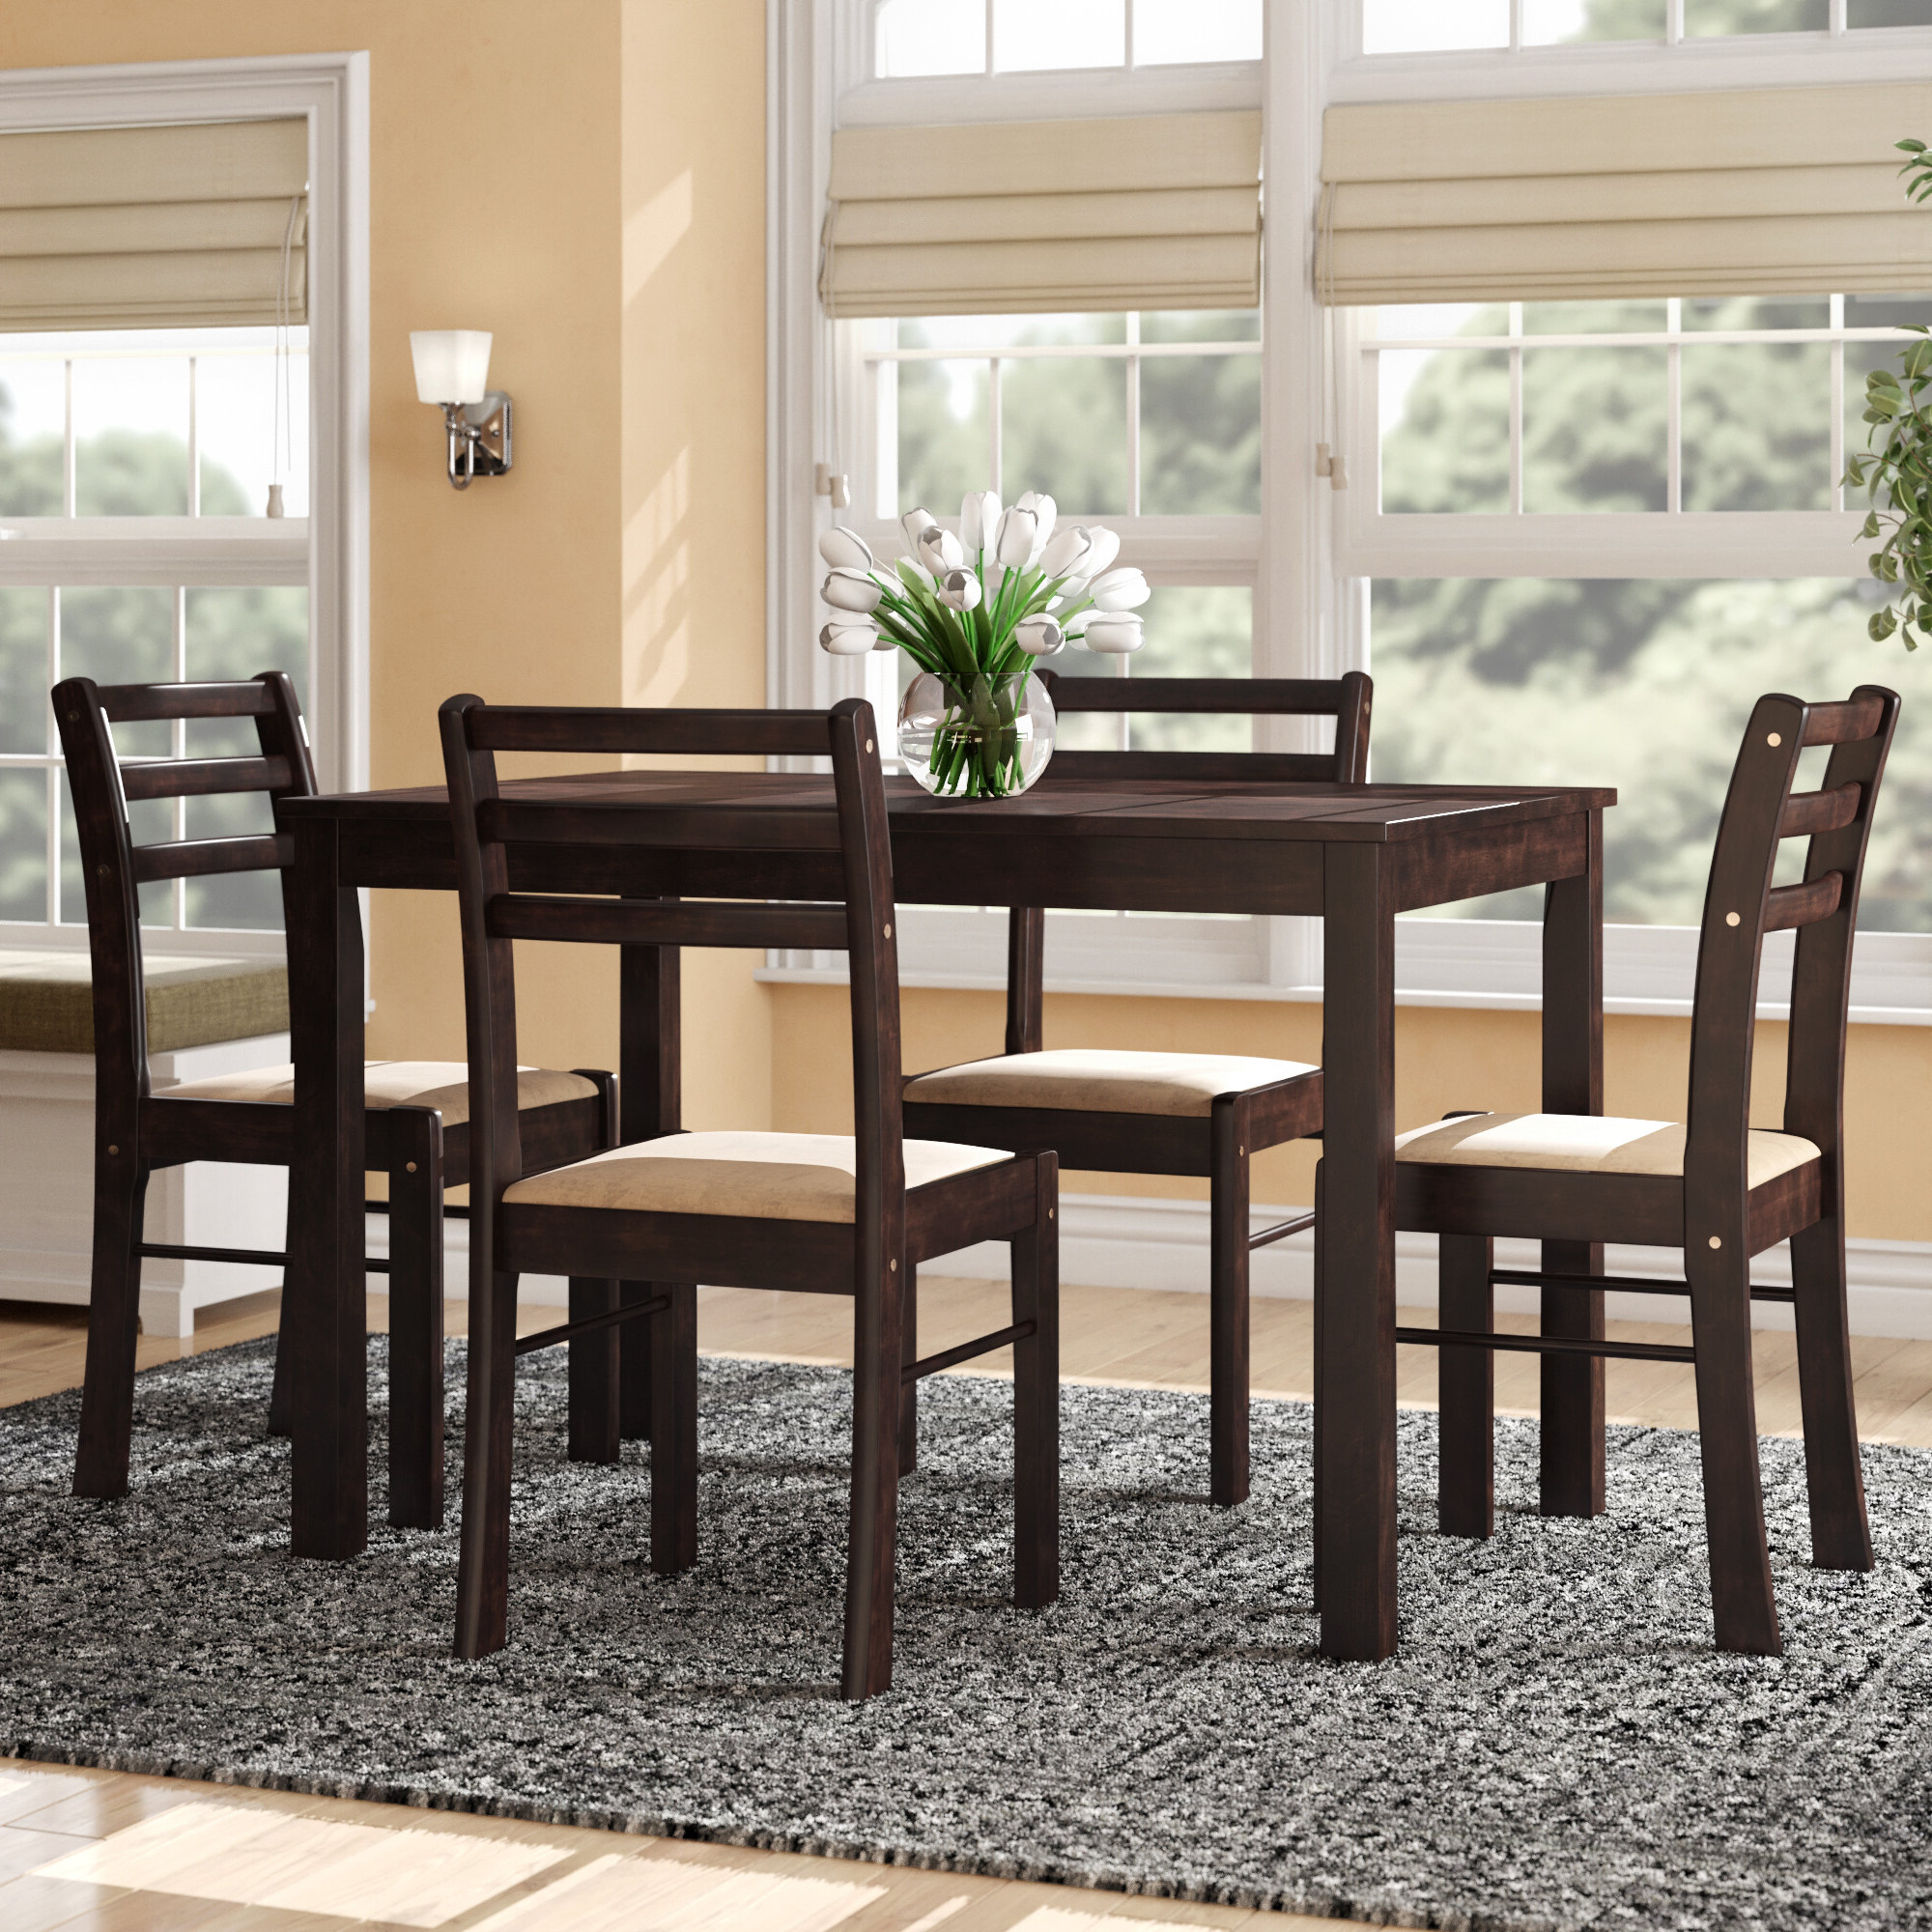 Hanska Wooden 5 Piece Counter Height Dining Table Sets (Set Of 5) Regarding Well Known Winston Porter Portal 5 Piece Dining Set & Reviews (Gallery 8 of 25)